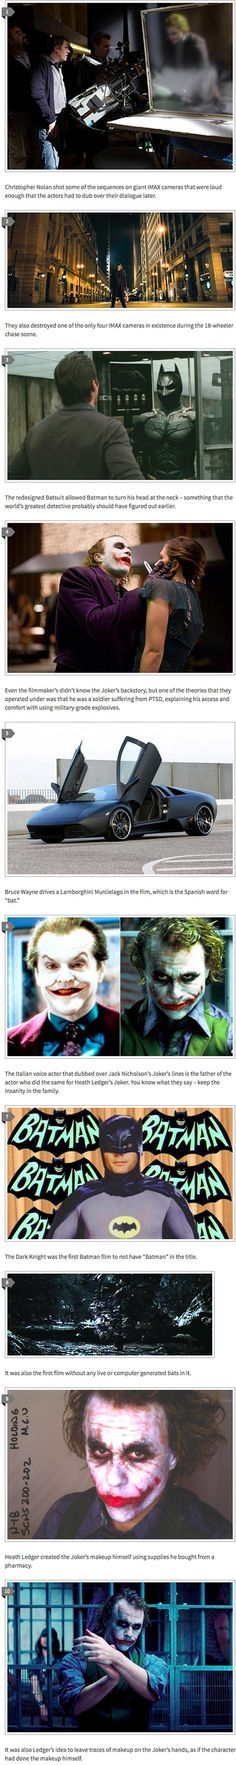 Here are some cool facts about The Dark Knight that might surprise you. No I want to watch it again!